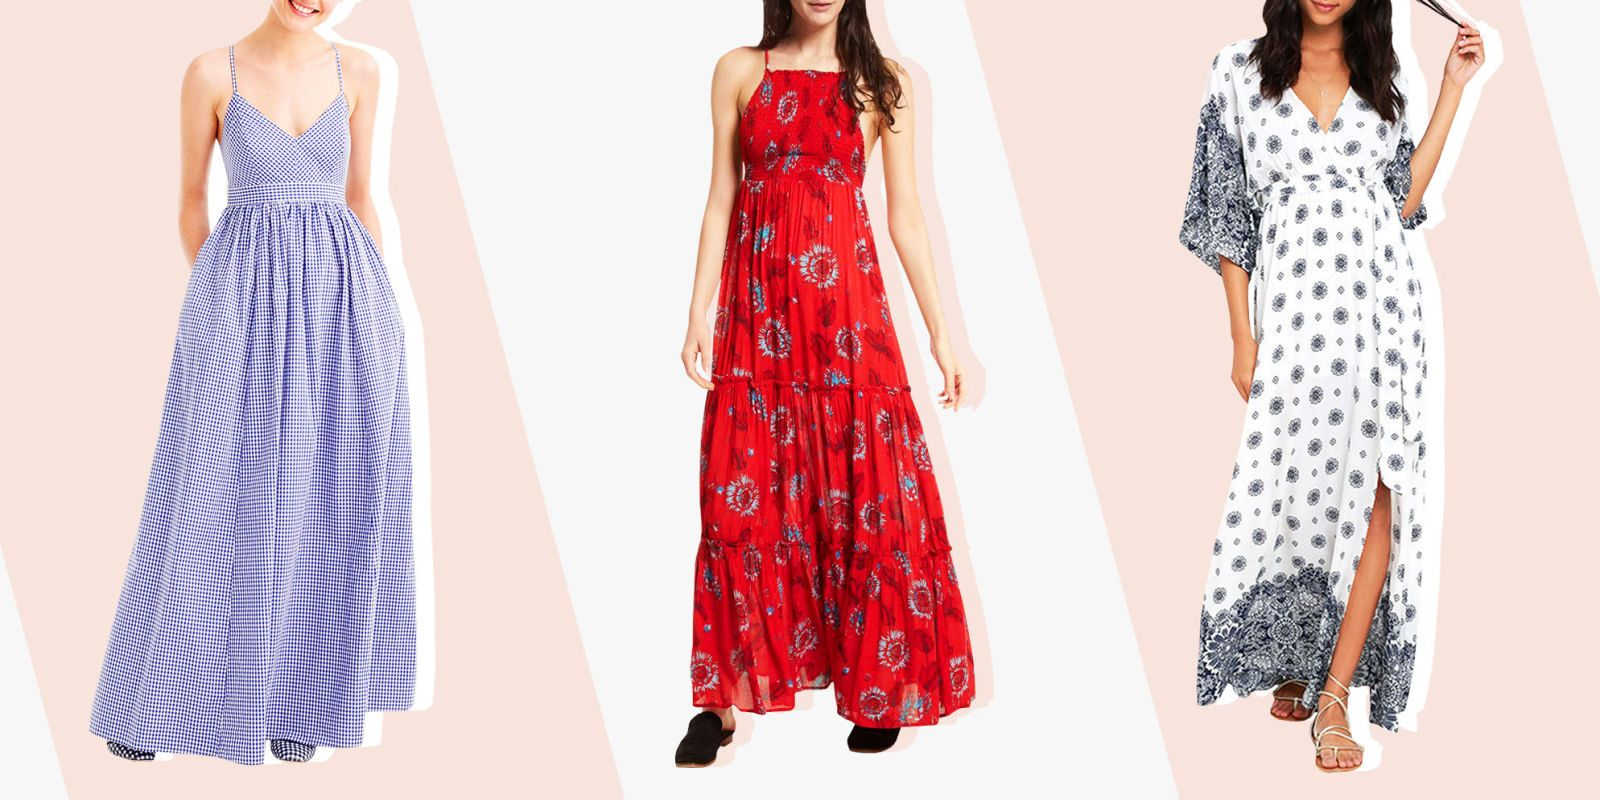 Maxi red dress 2018 h&m